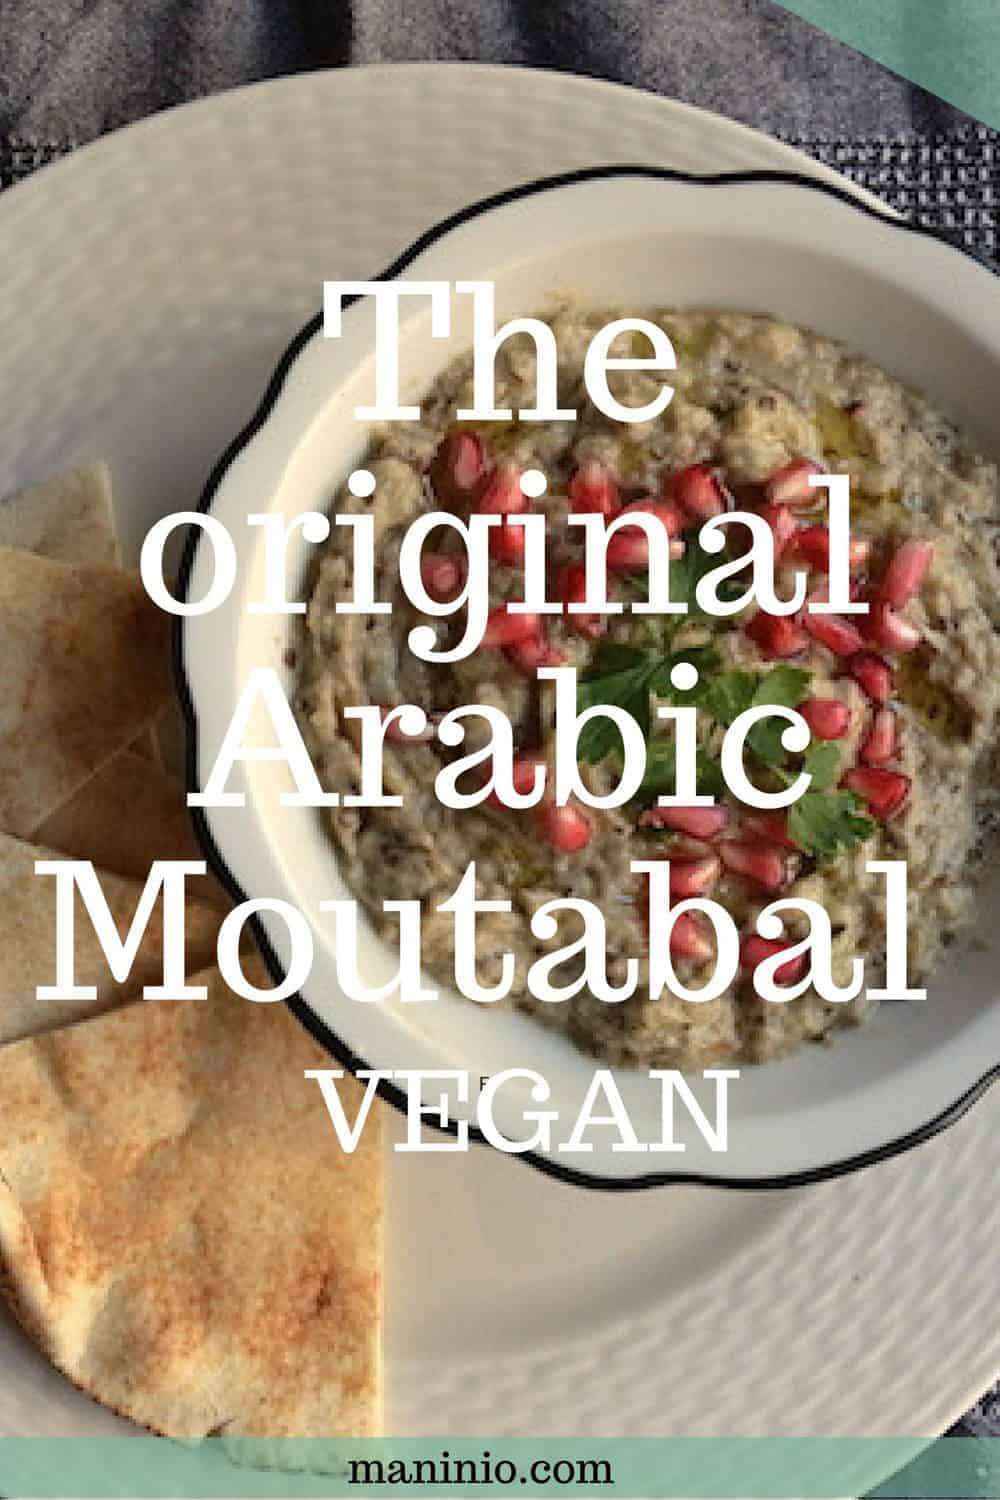 The original Arabic Moutabal (Baba Ganoush) | Middle East - Vegan. maninio.com